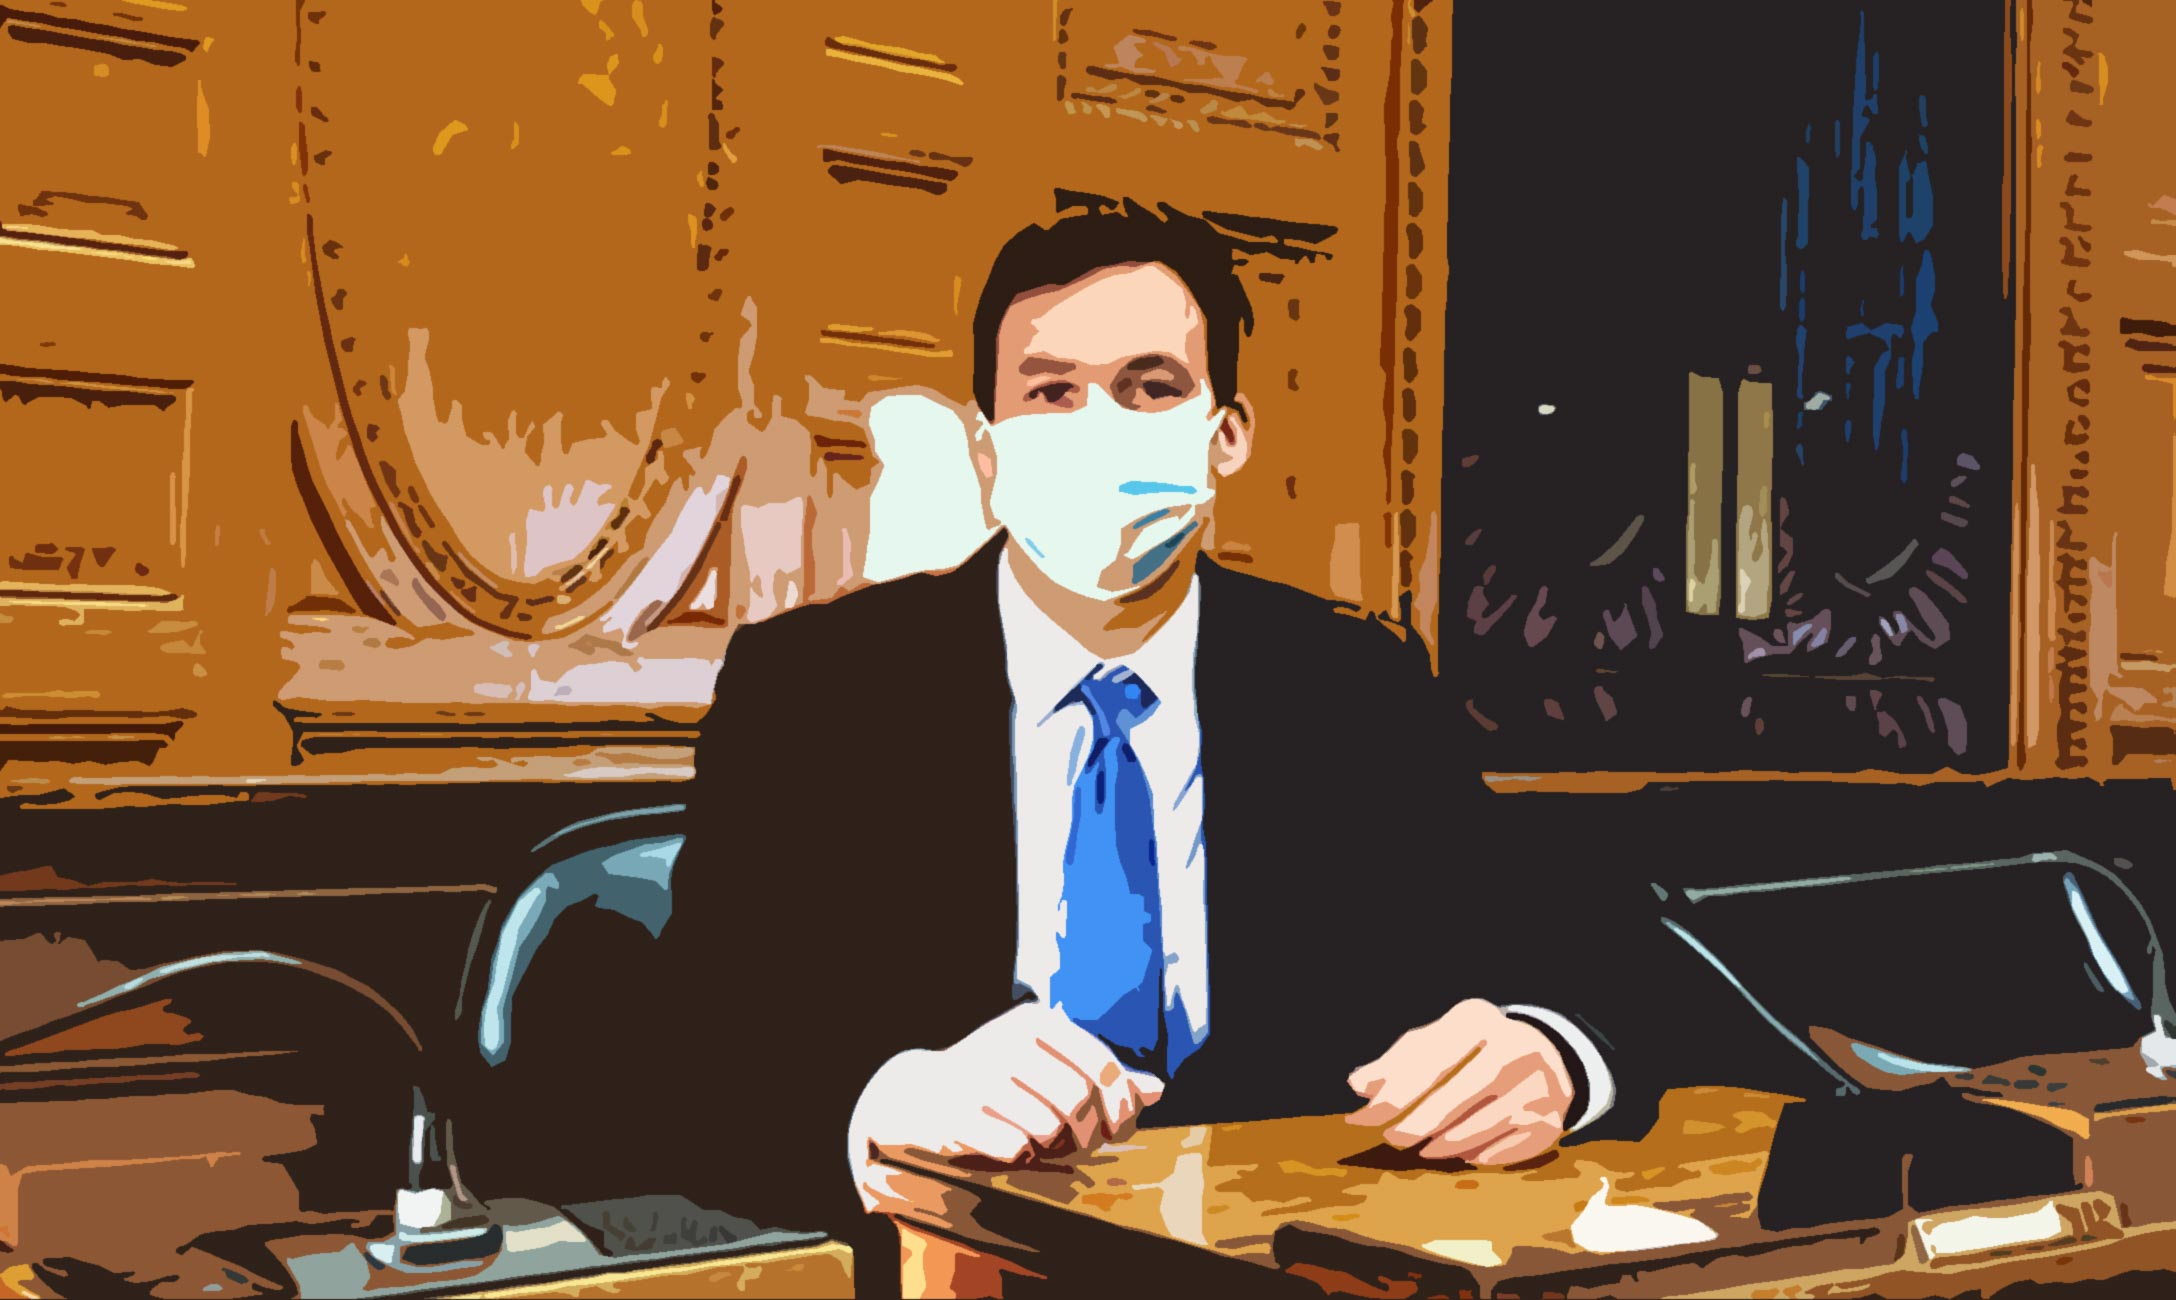 Graphic of Massachusetts State Representative Dan Sena seated in a government building behind a desk.